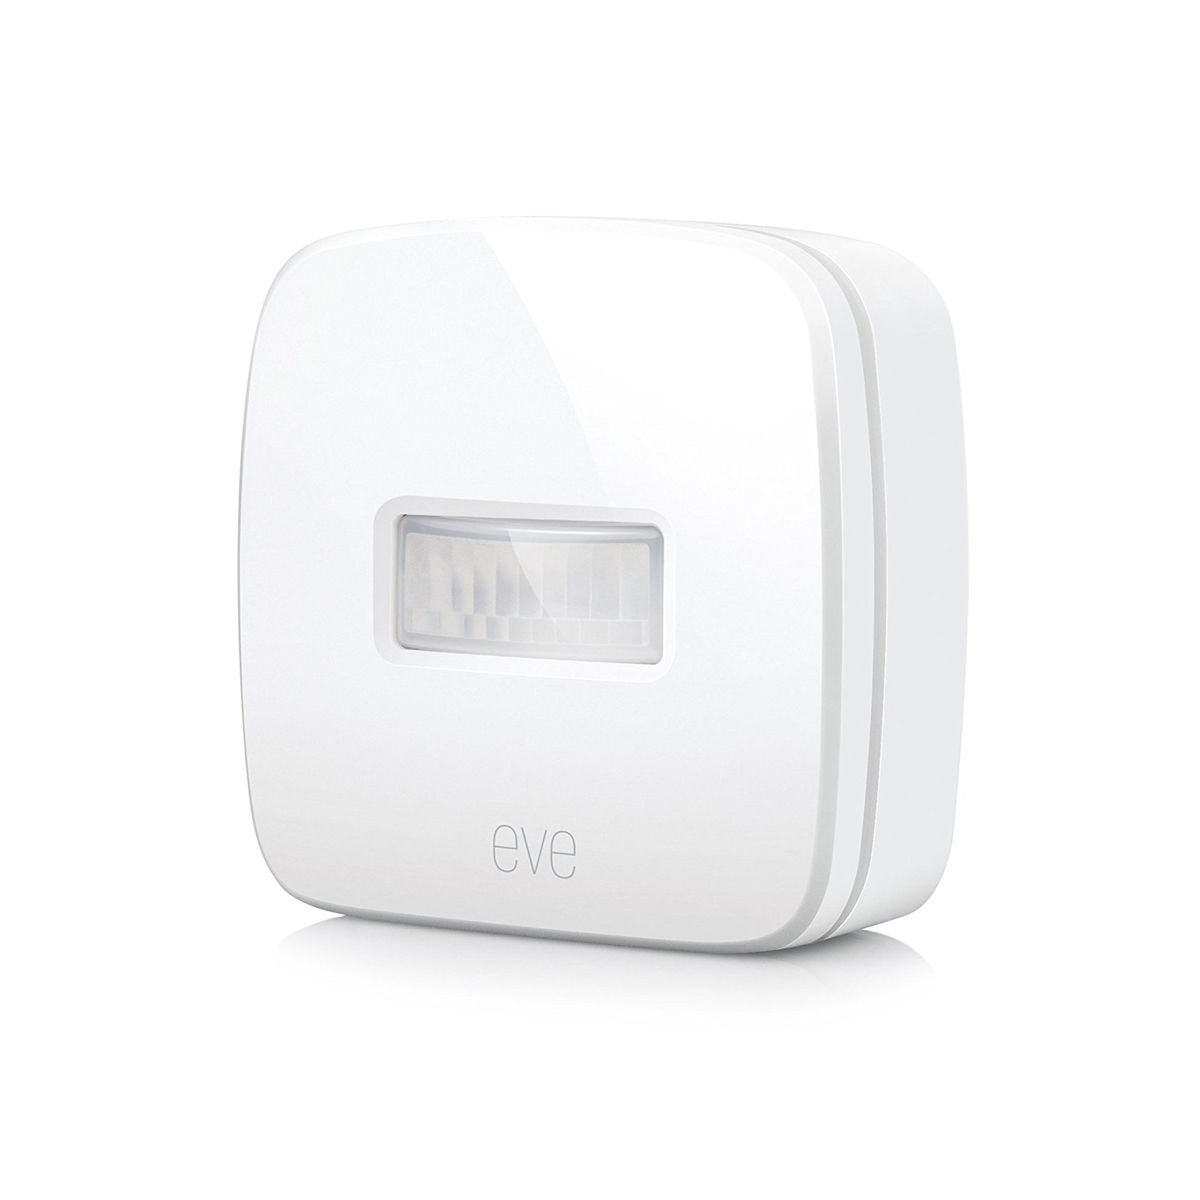 Elgato Eve Motion Sensor Wireless Motion Sensor